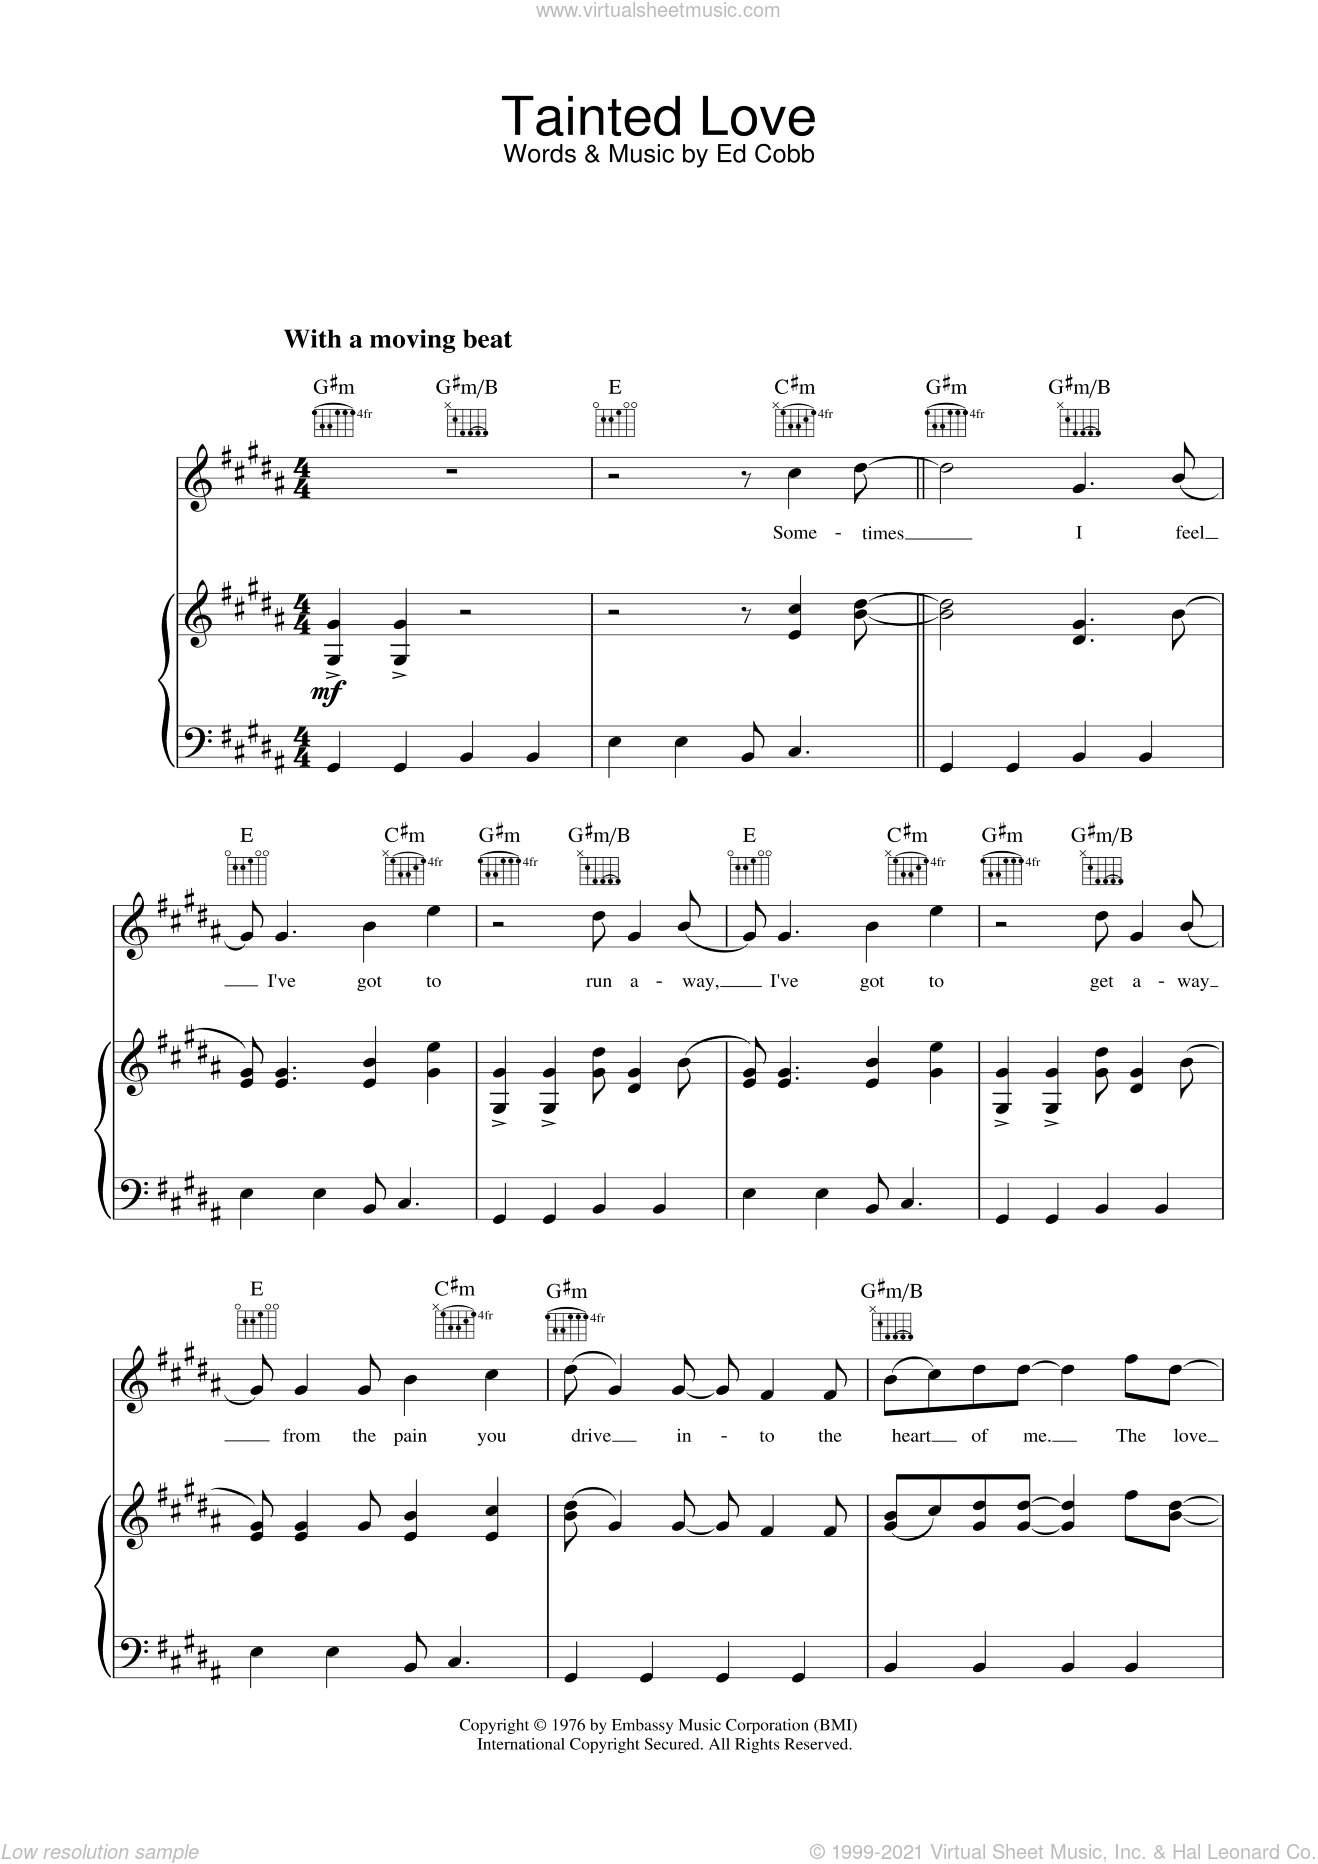 Tainted Love sheet music for voice, piano or guitar by Marc Almond, Soft Cell and Ed Cobb, intermediate skill level